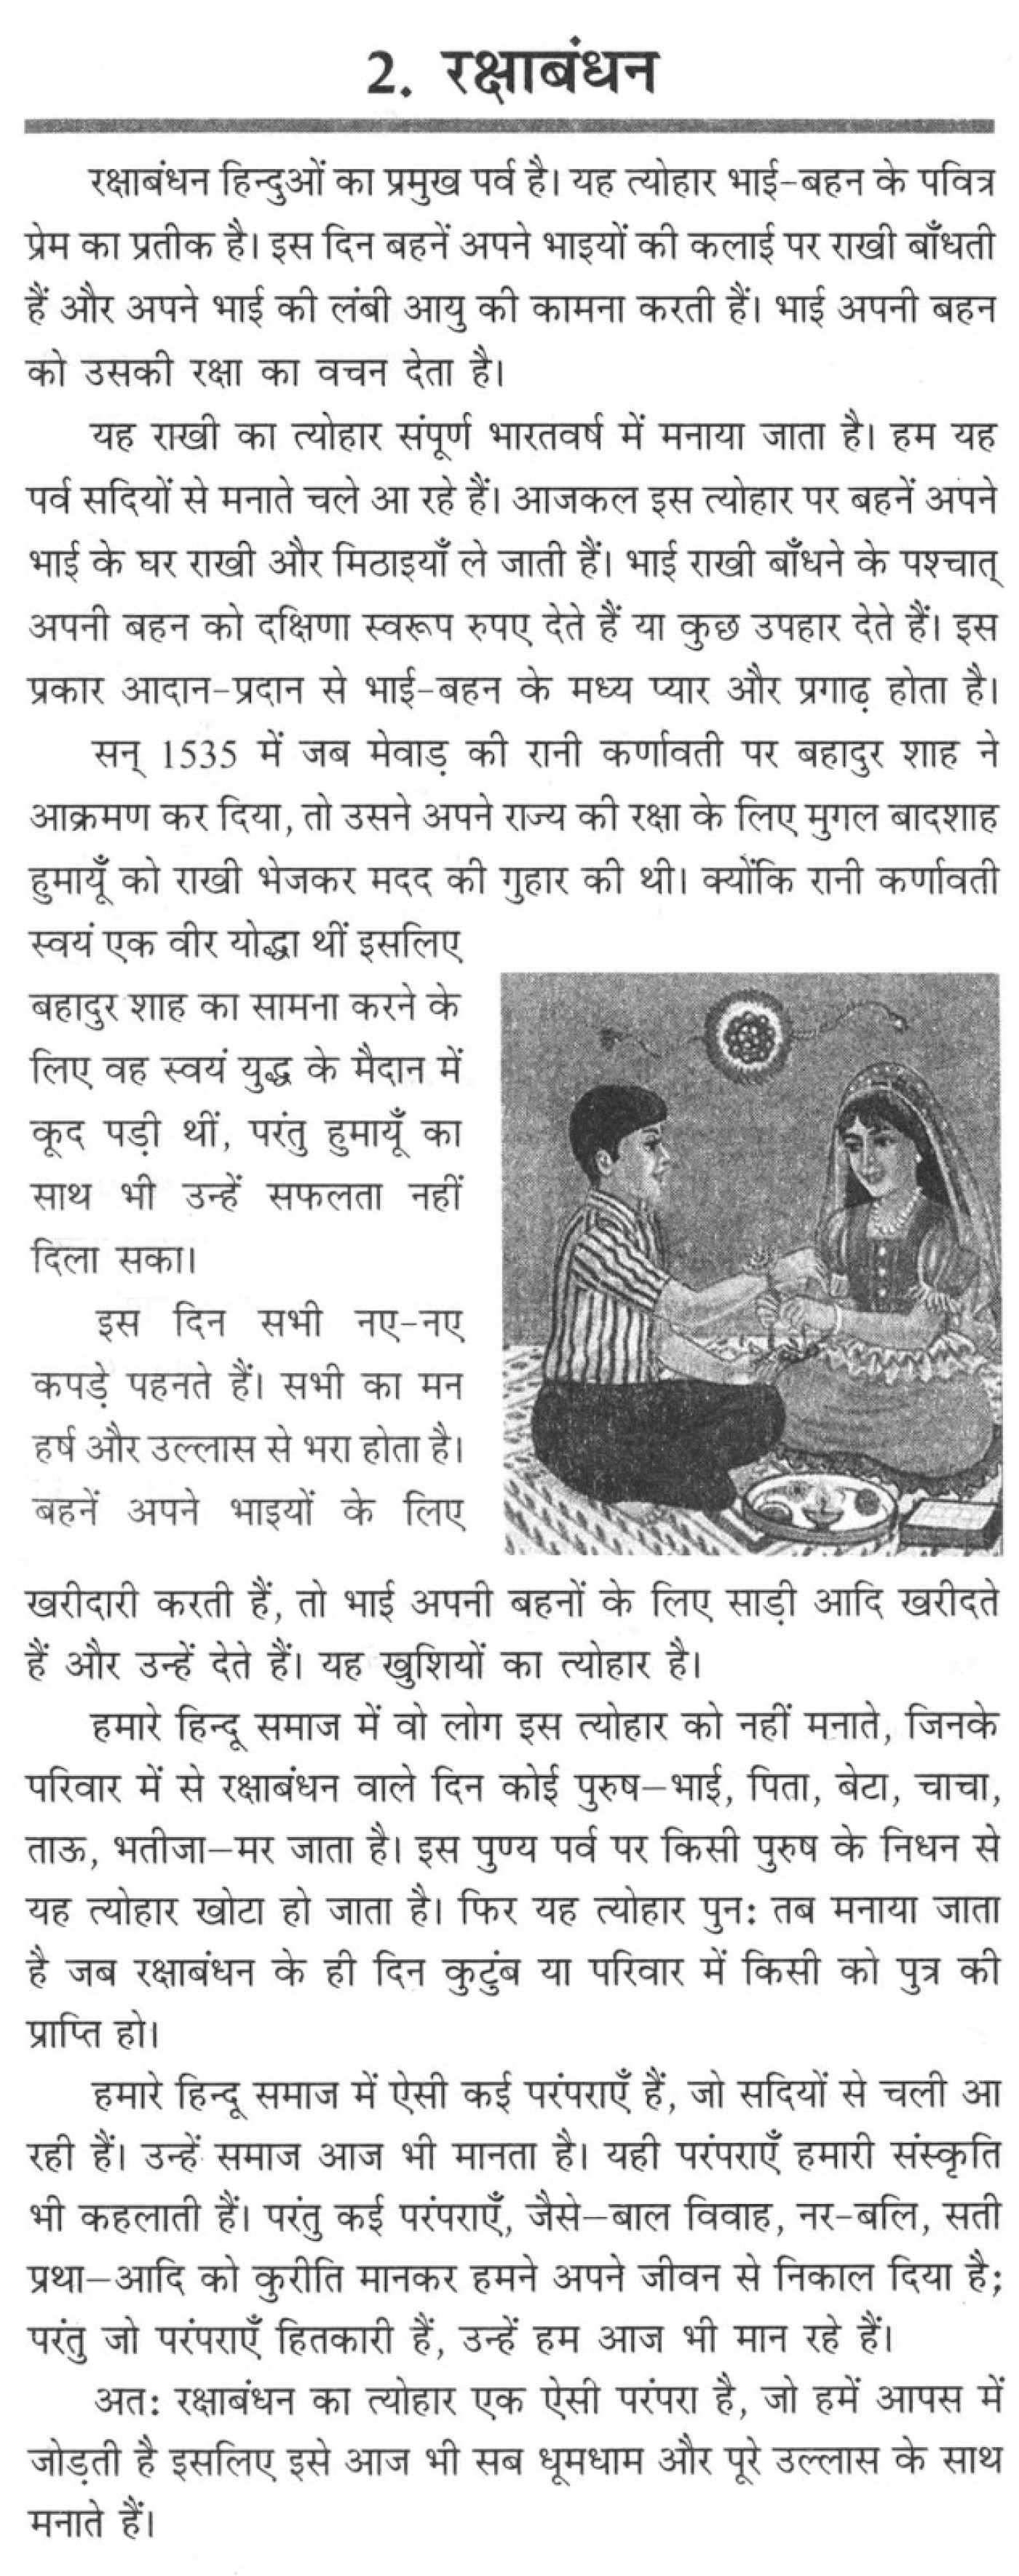 015 Raksha20bandhan20essay20in20hindi202016 Essay Example Good Habits In Exceptional Hindi Habit Eating And Bad 1400